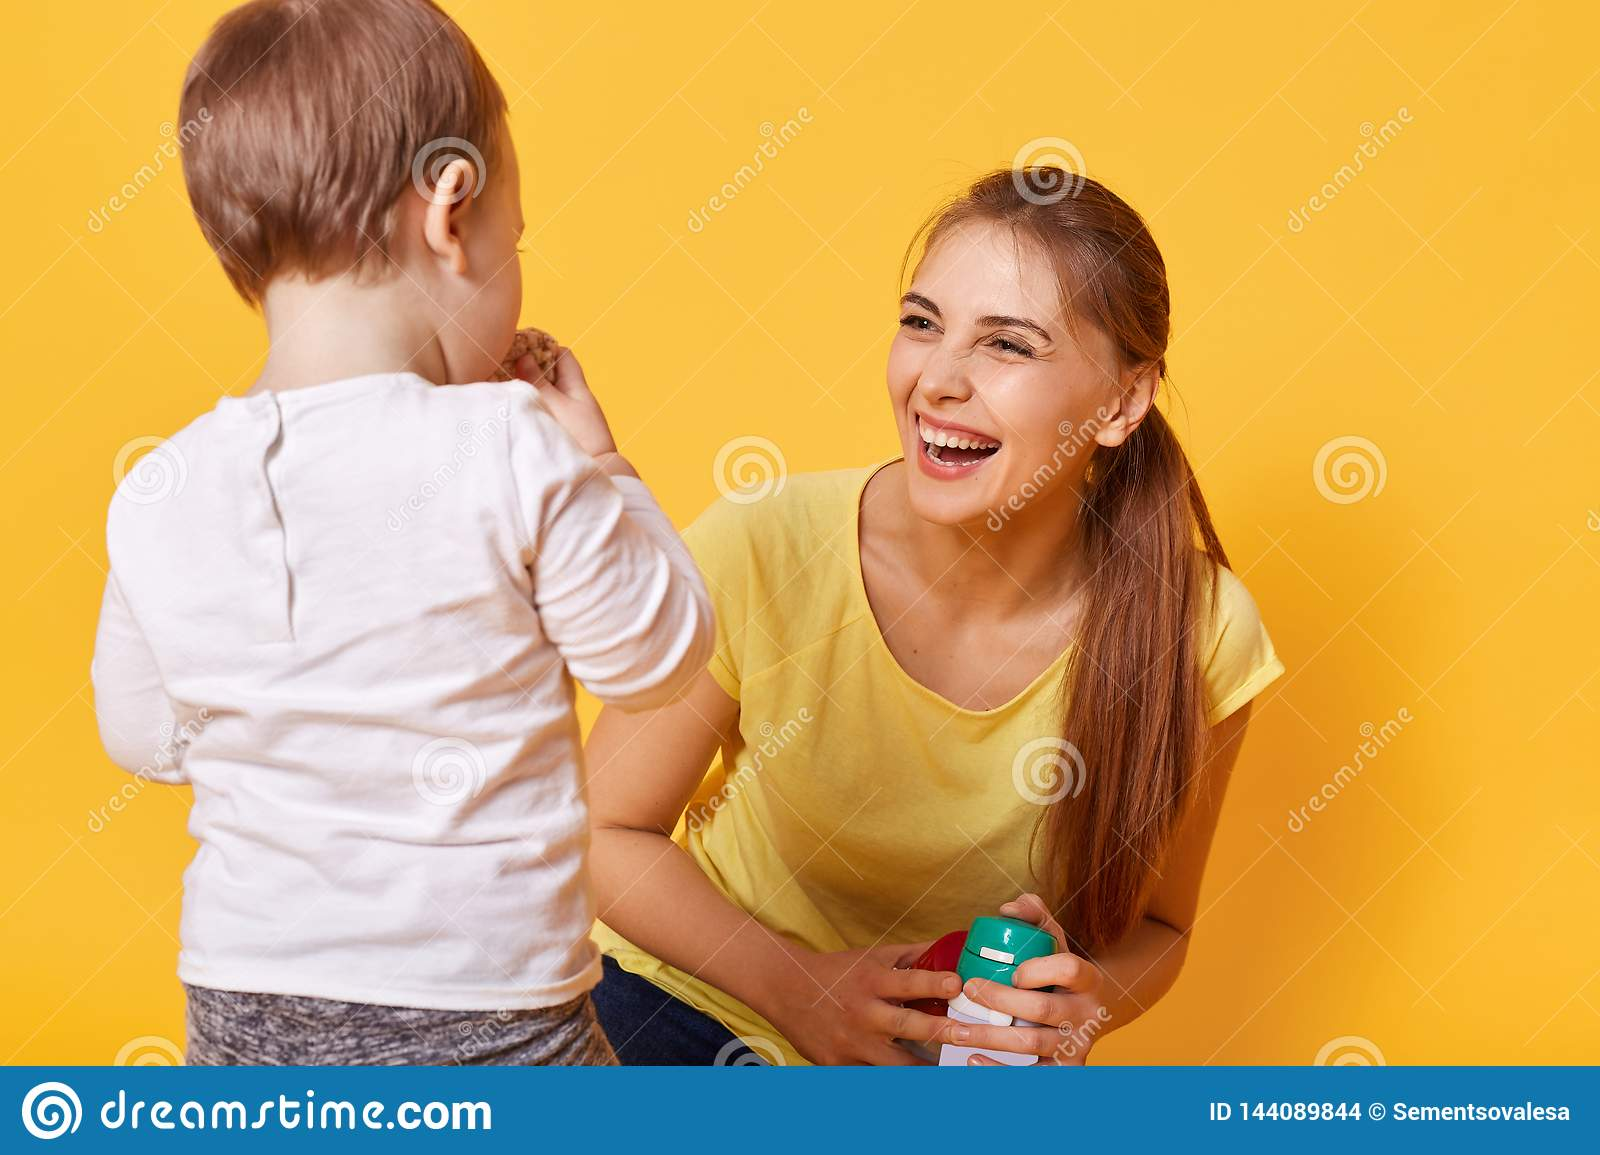 Laughing joyful woman plays with her little cute daughter, spends free time together on the weekends. A young woman is happy to